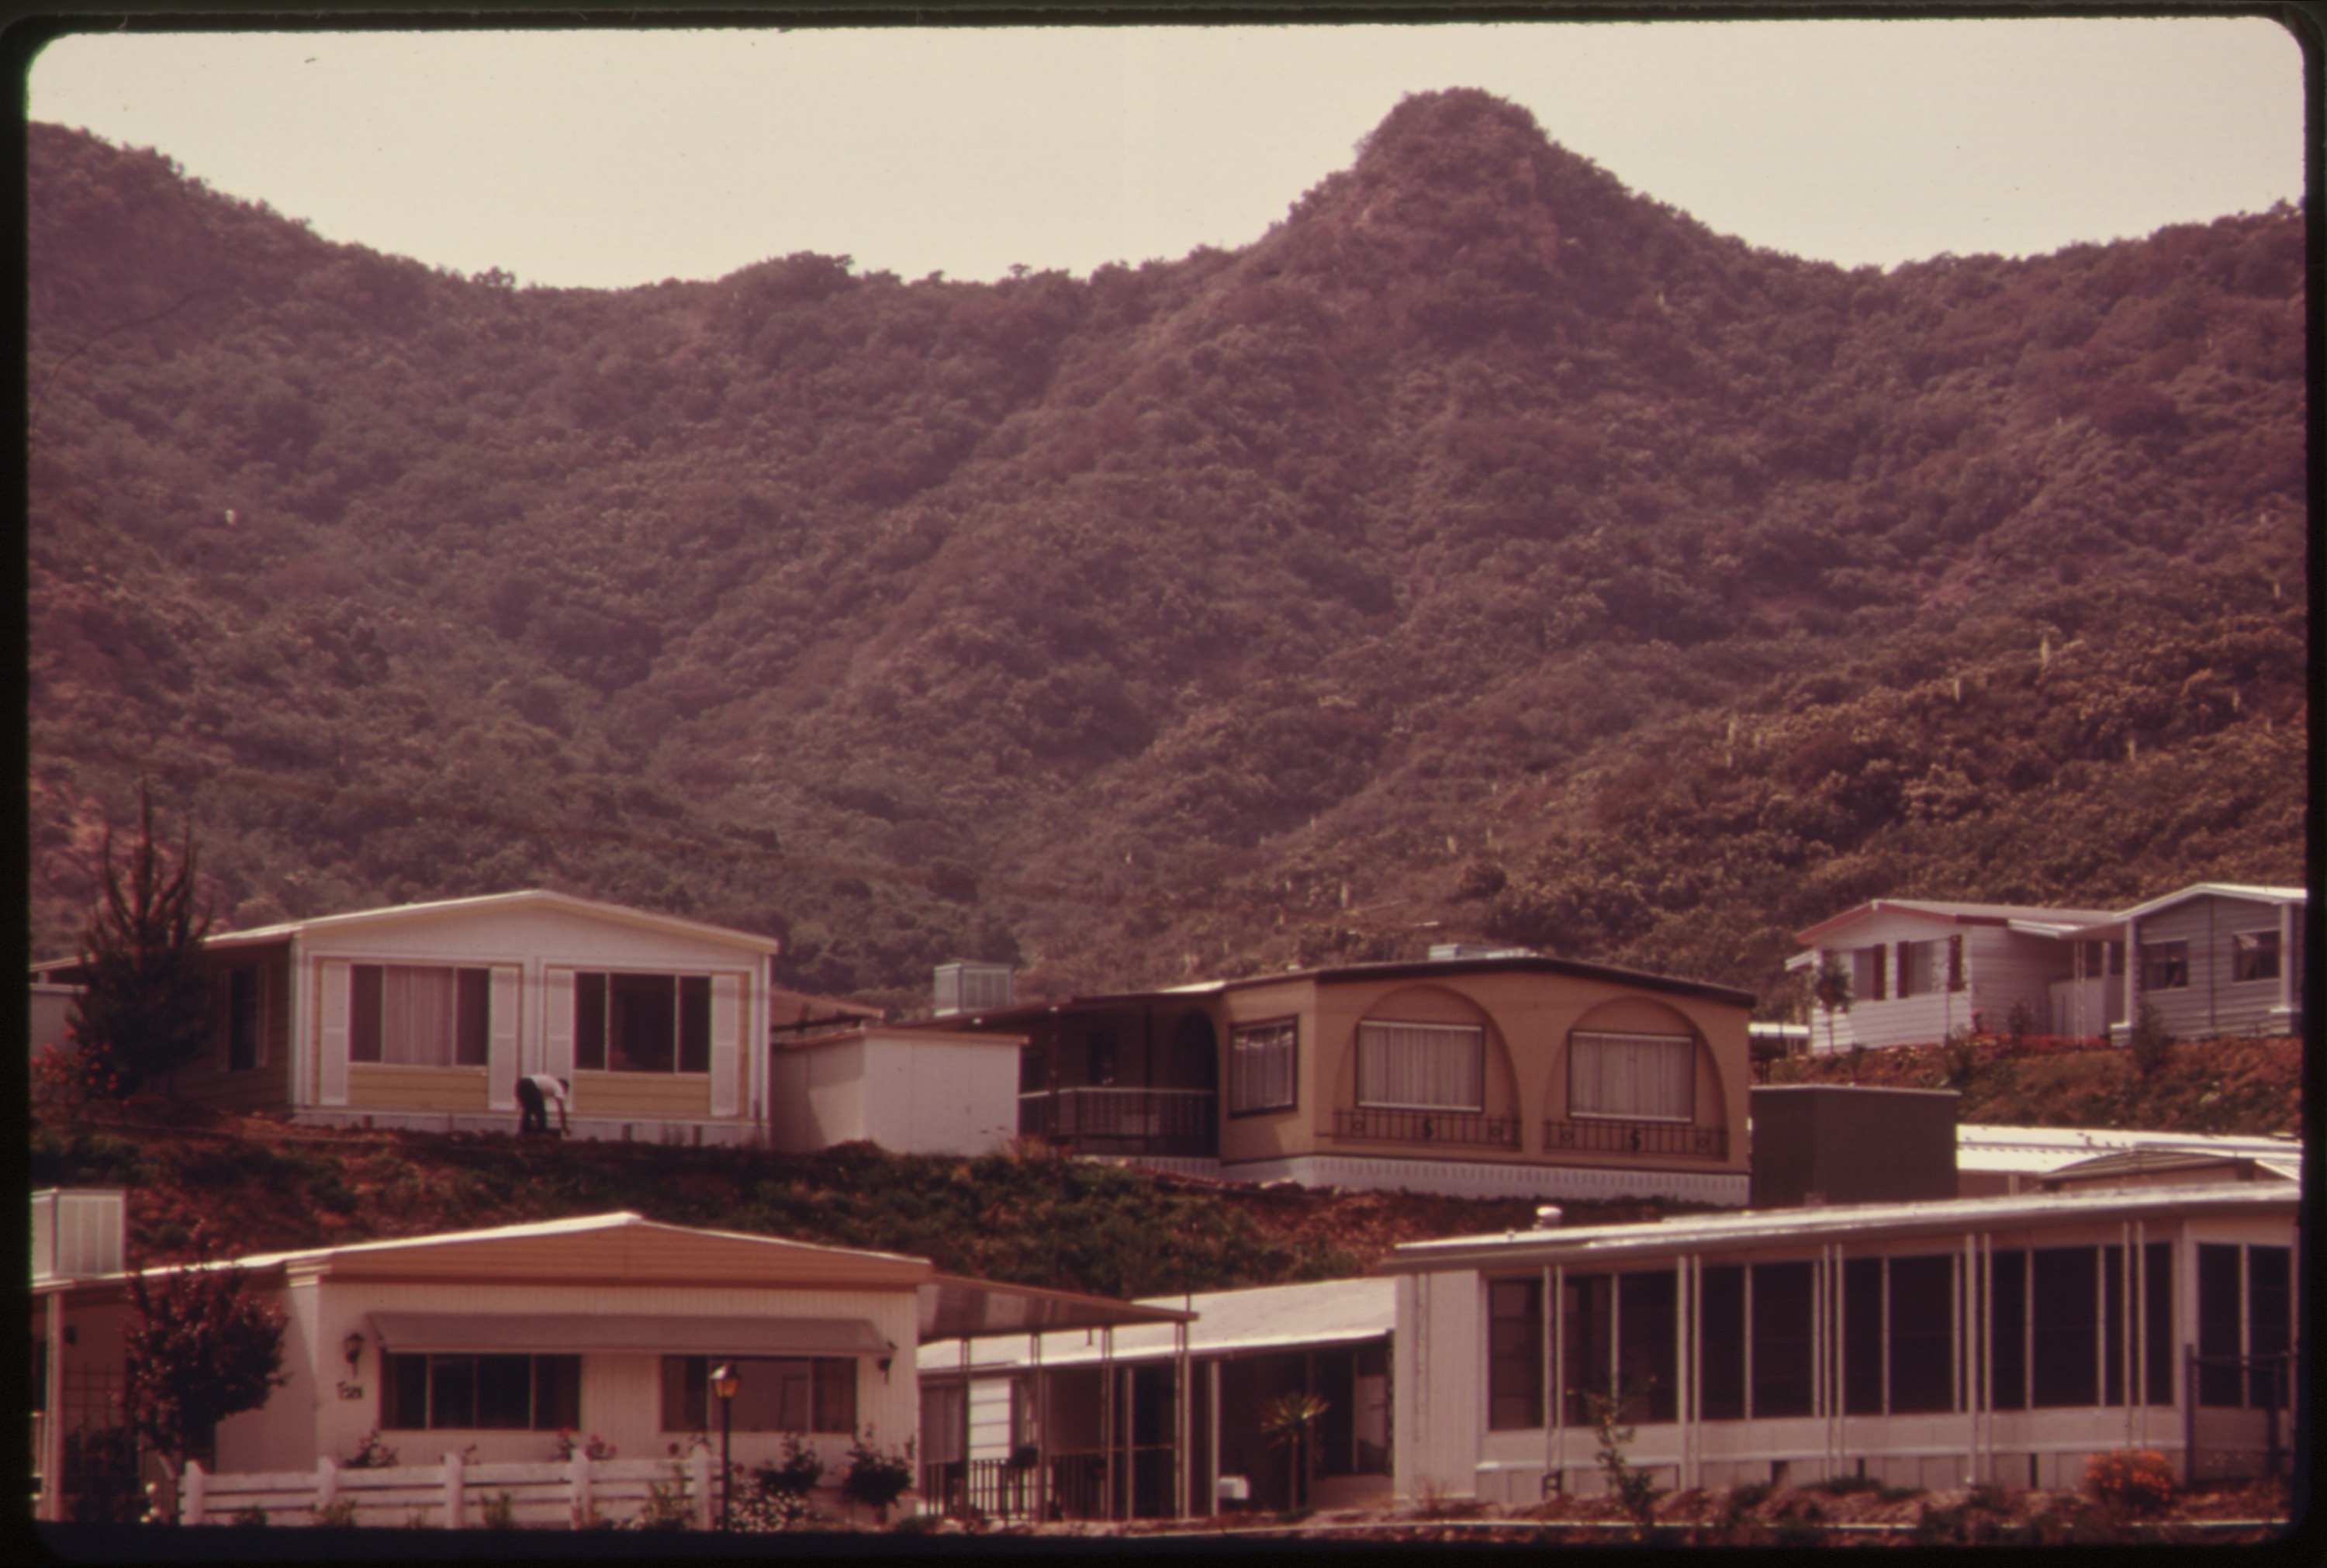 FileSEMINOLE SPRINGS MOBILE HOME PARK ON MULHOLLAND DRIVE NEAR MALIBU CALIFORNIA